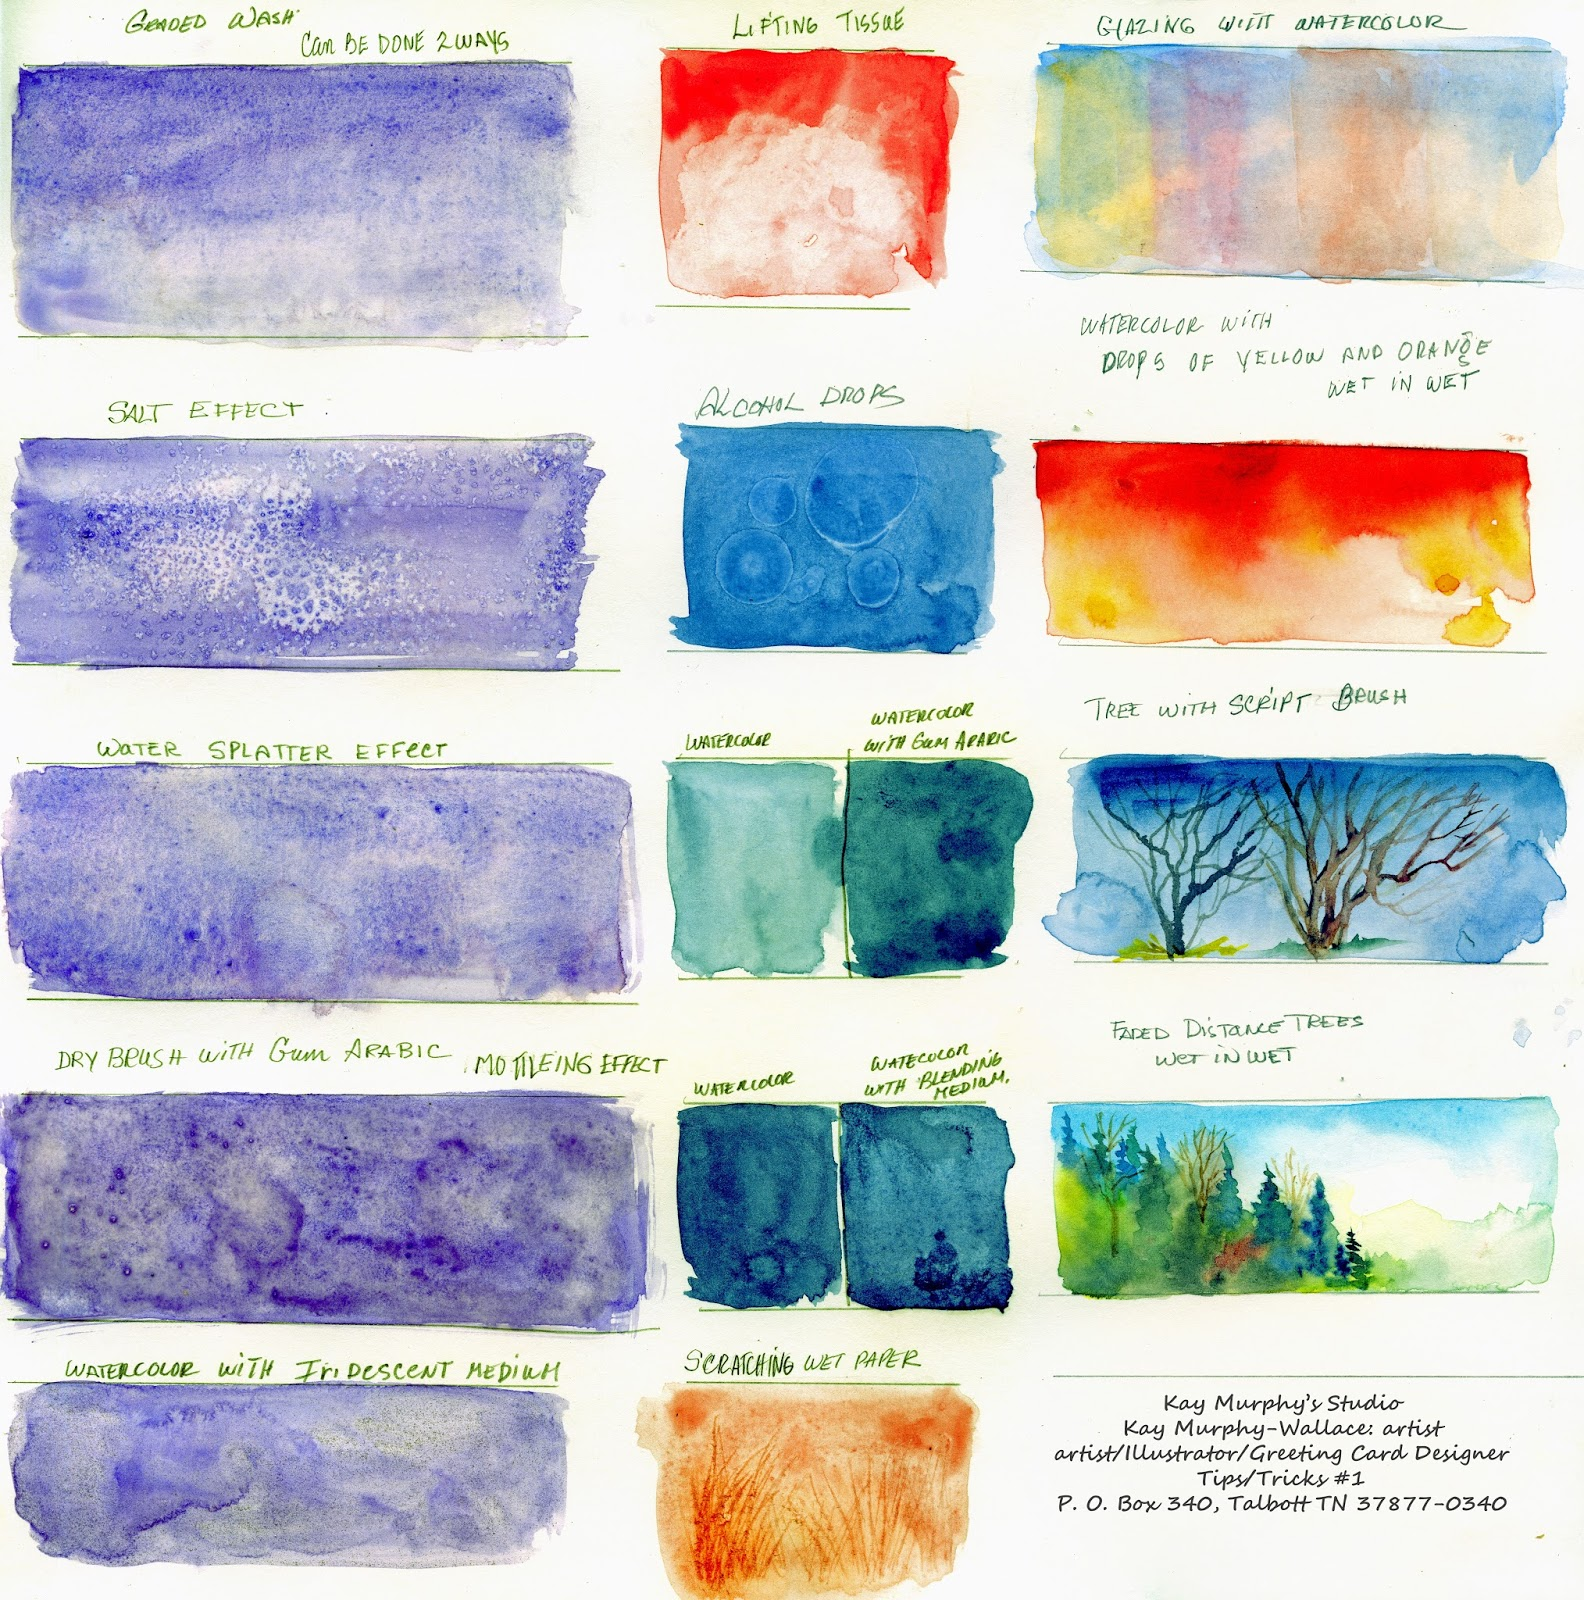 Kay murphy 39 s studio kay murphy wallace artist watercolor for Watercolour tips and tricks